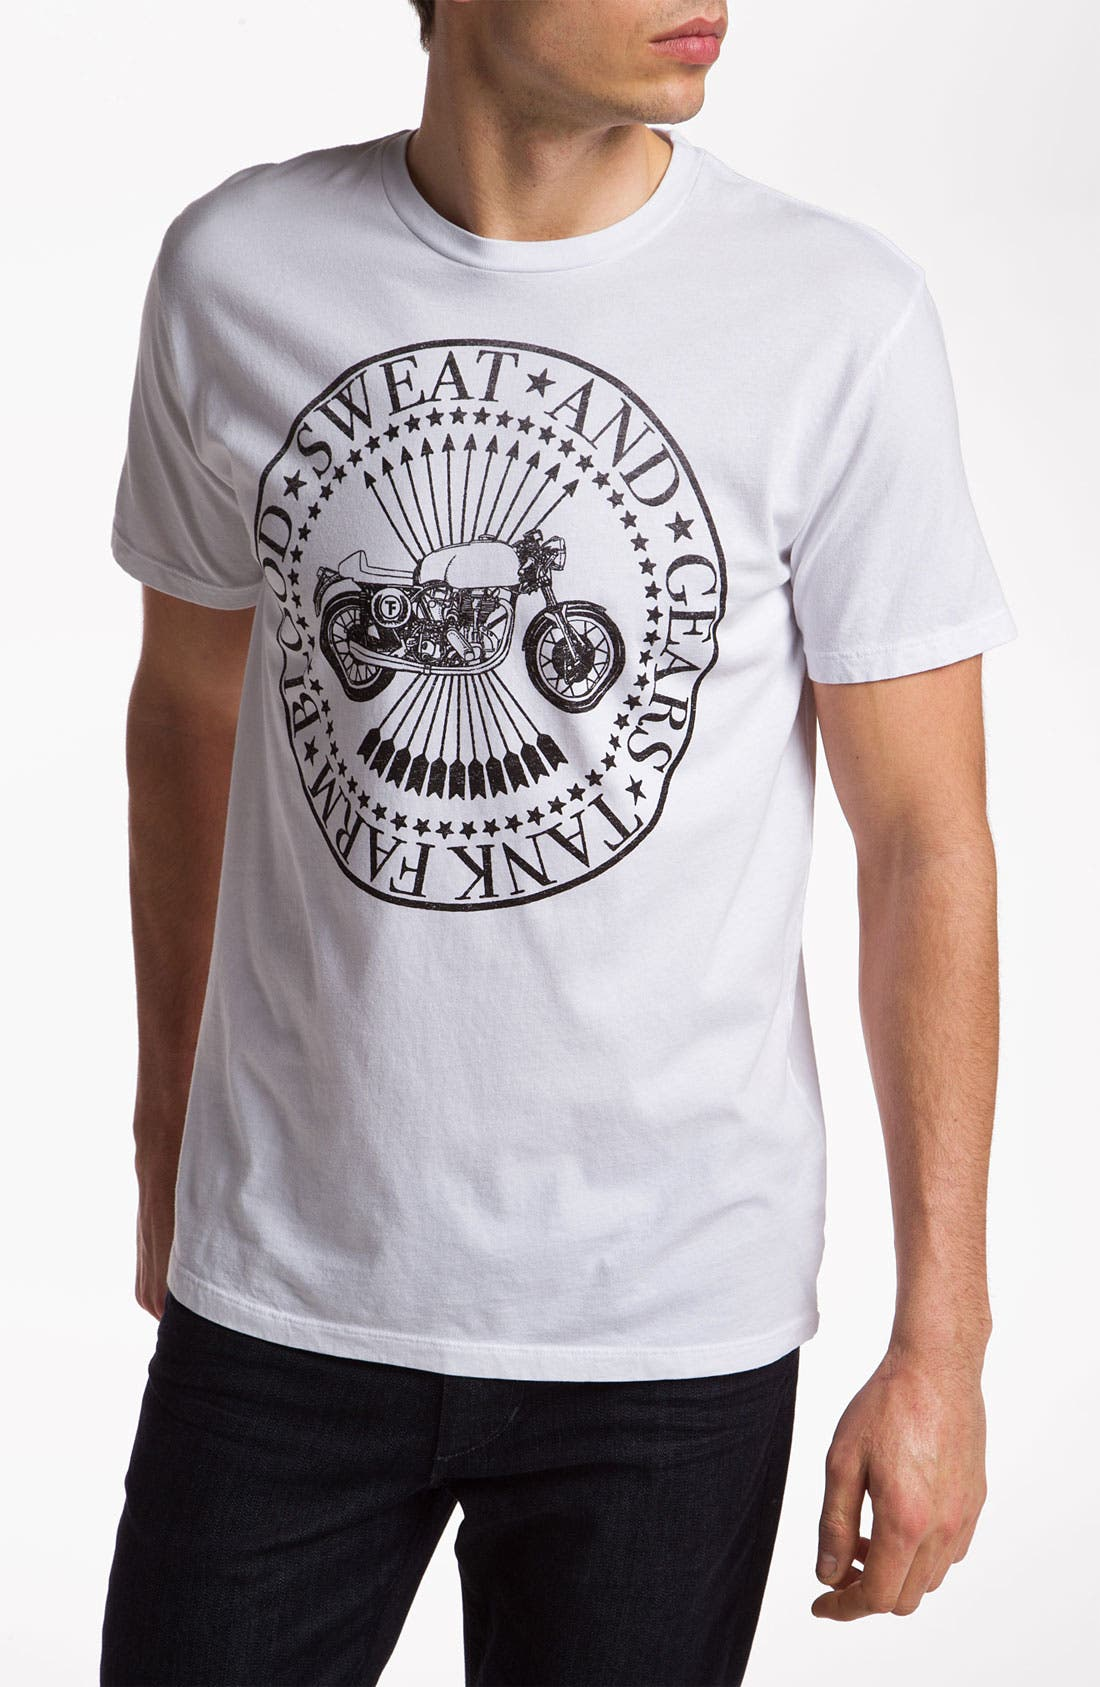 Alternate Image 1 Selected - Tankfarm 'Motor Stamp' Graphic T-Shirt